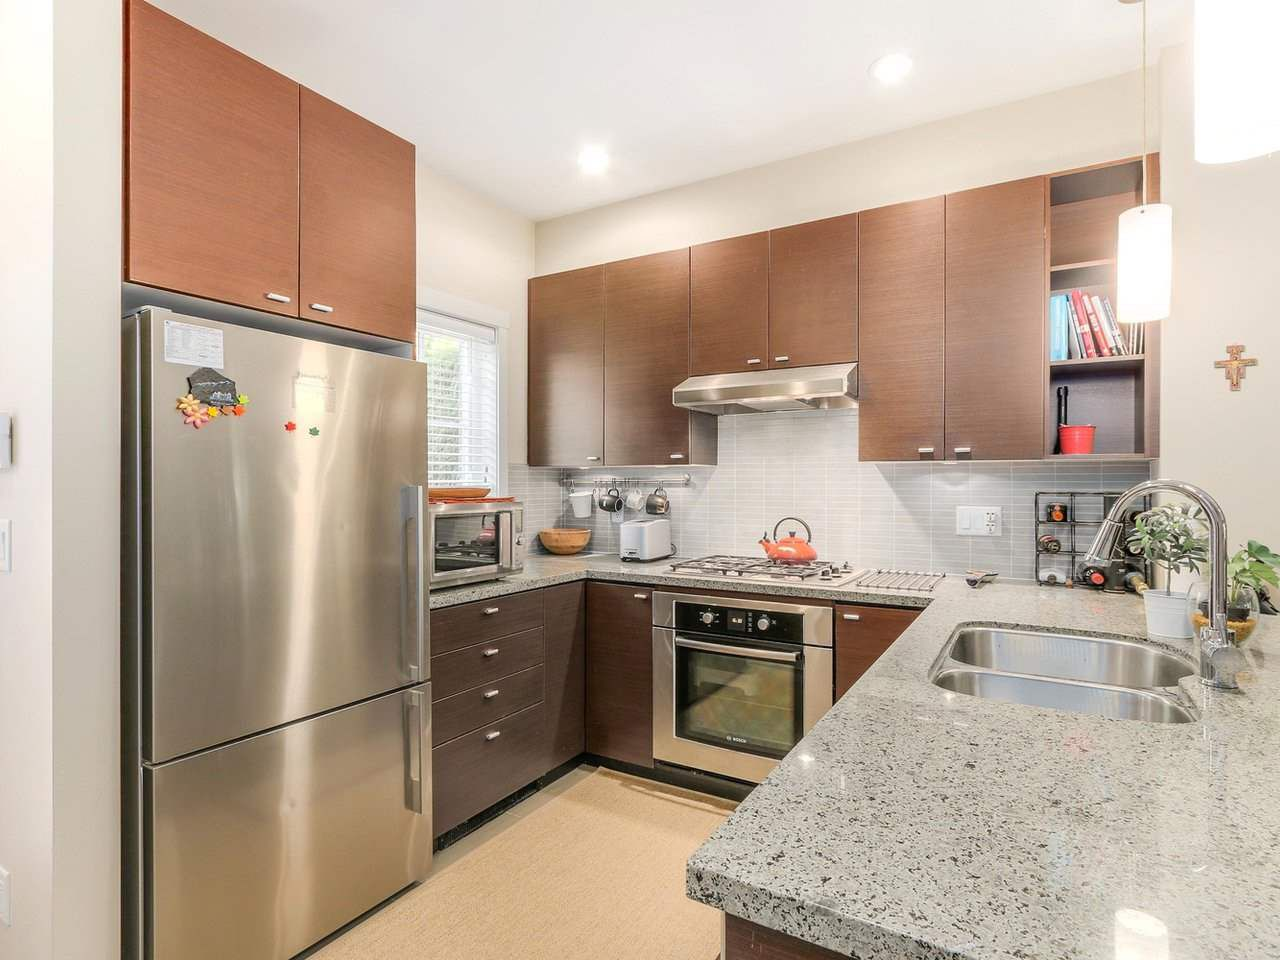 """Photo 8: Photos: 6181 OAK Street in Vancouver: South Granville Townhouse for sale in """"CARRINGTON"""" (Vancouver West)  : MLS®# R2295526"""